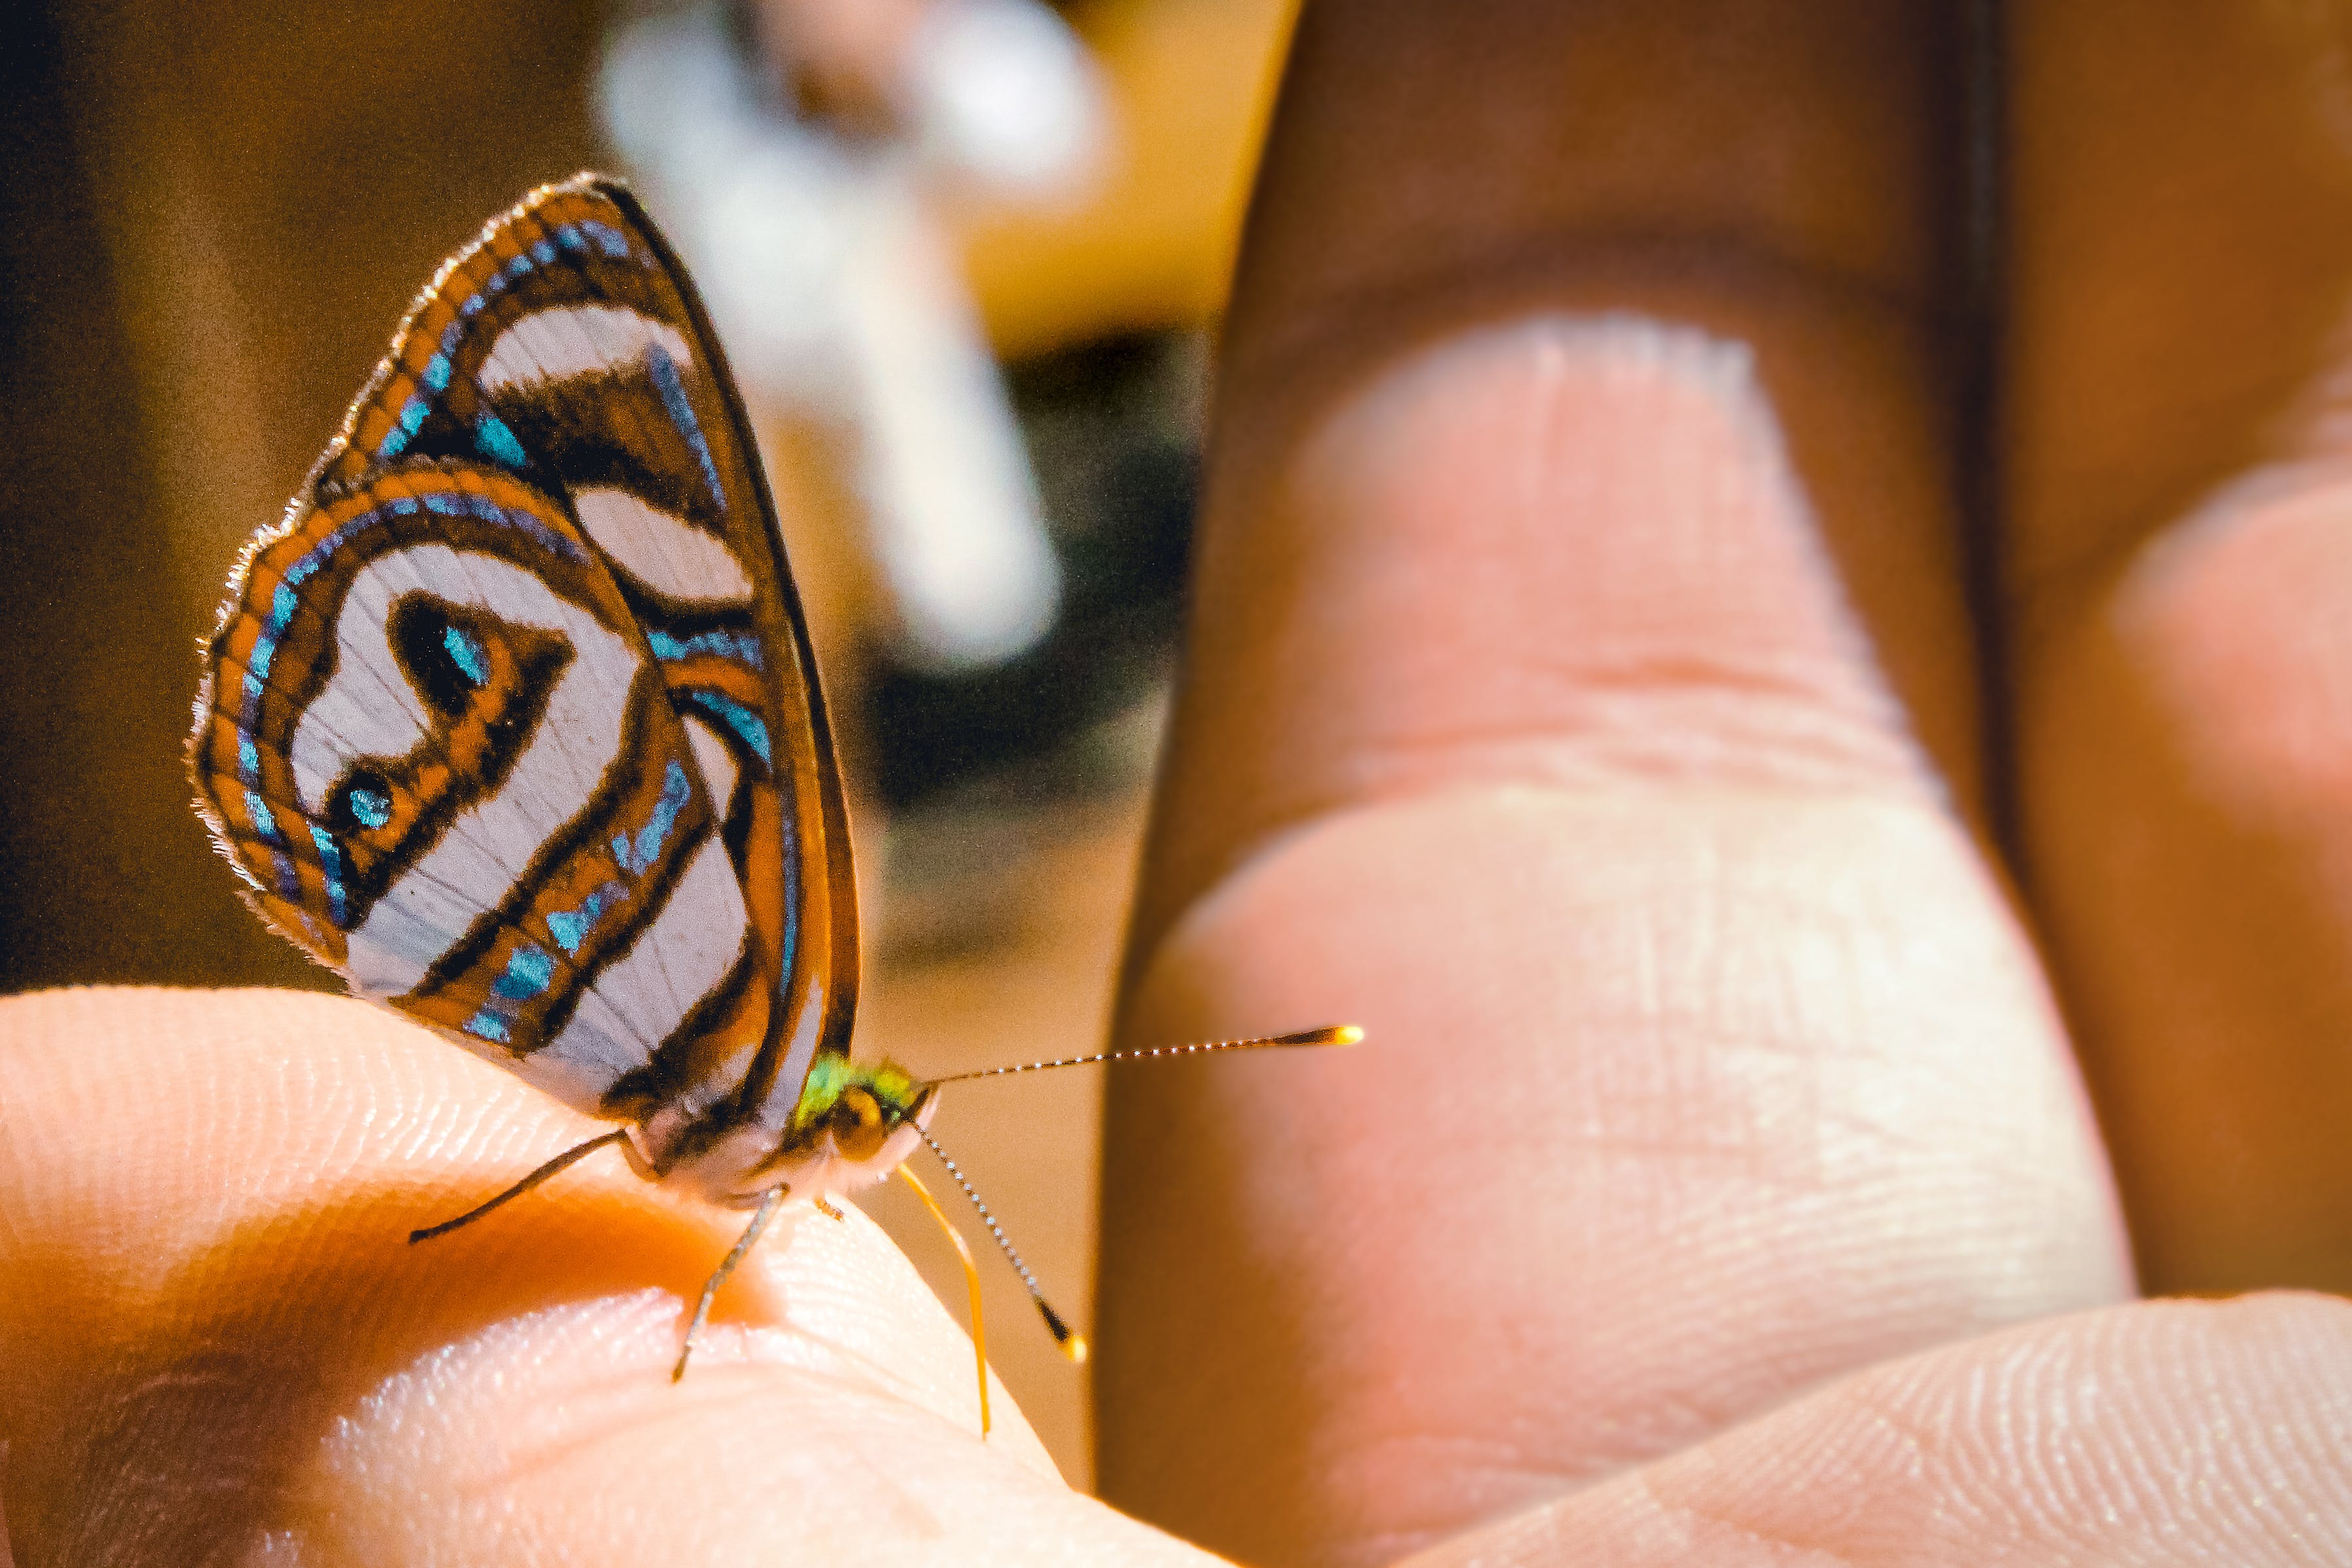 Brown, Gray, and Black Butterfly Perching on Human Finger